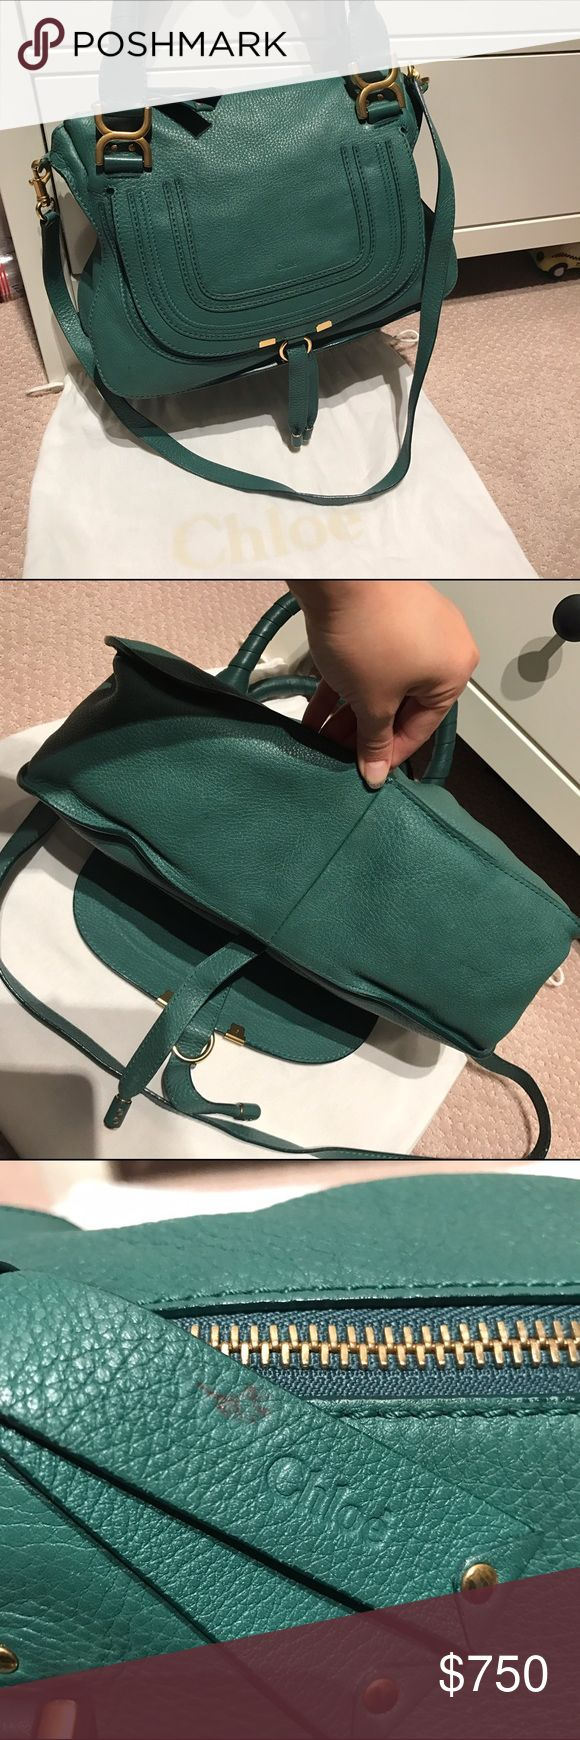 Chloe Marcie Medium Satchel Gorgeous Chloe Marcie Medium Satchel.  In great condition!  Leather has softened but still has shape. No visible scratches or tears.  The handles are in good shape, hardware has hairline scratches from use.  In the Emerald Coast color.  Inside is very clean.  The zipper pull has a black pen mark.  Will come with cross body strap, authenticity card and dustbag.  From a smoke free home. Chloe Bags Satchels